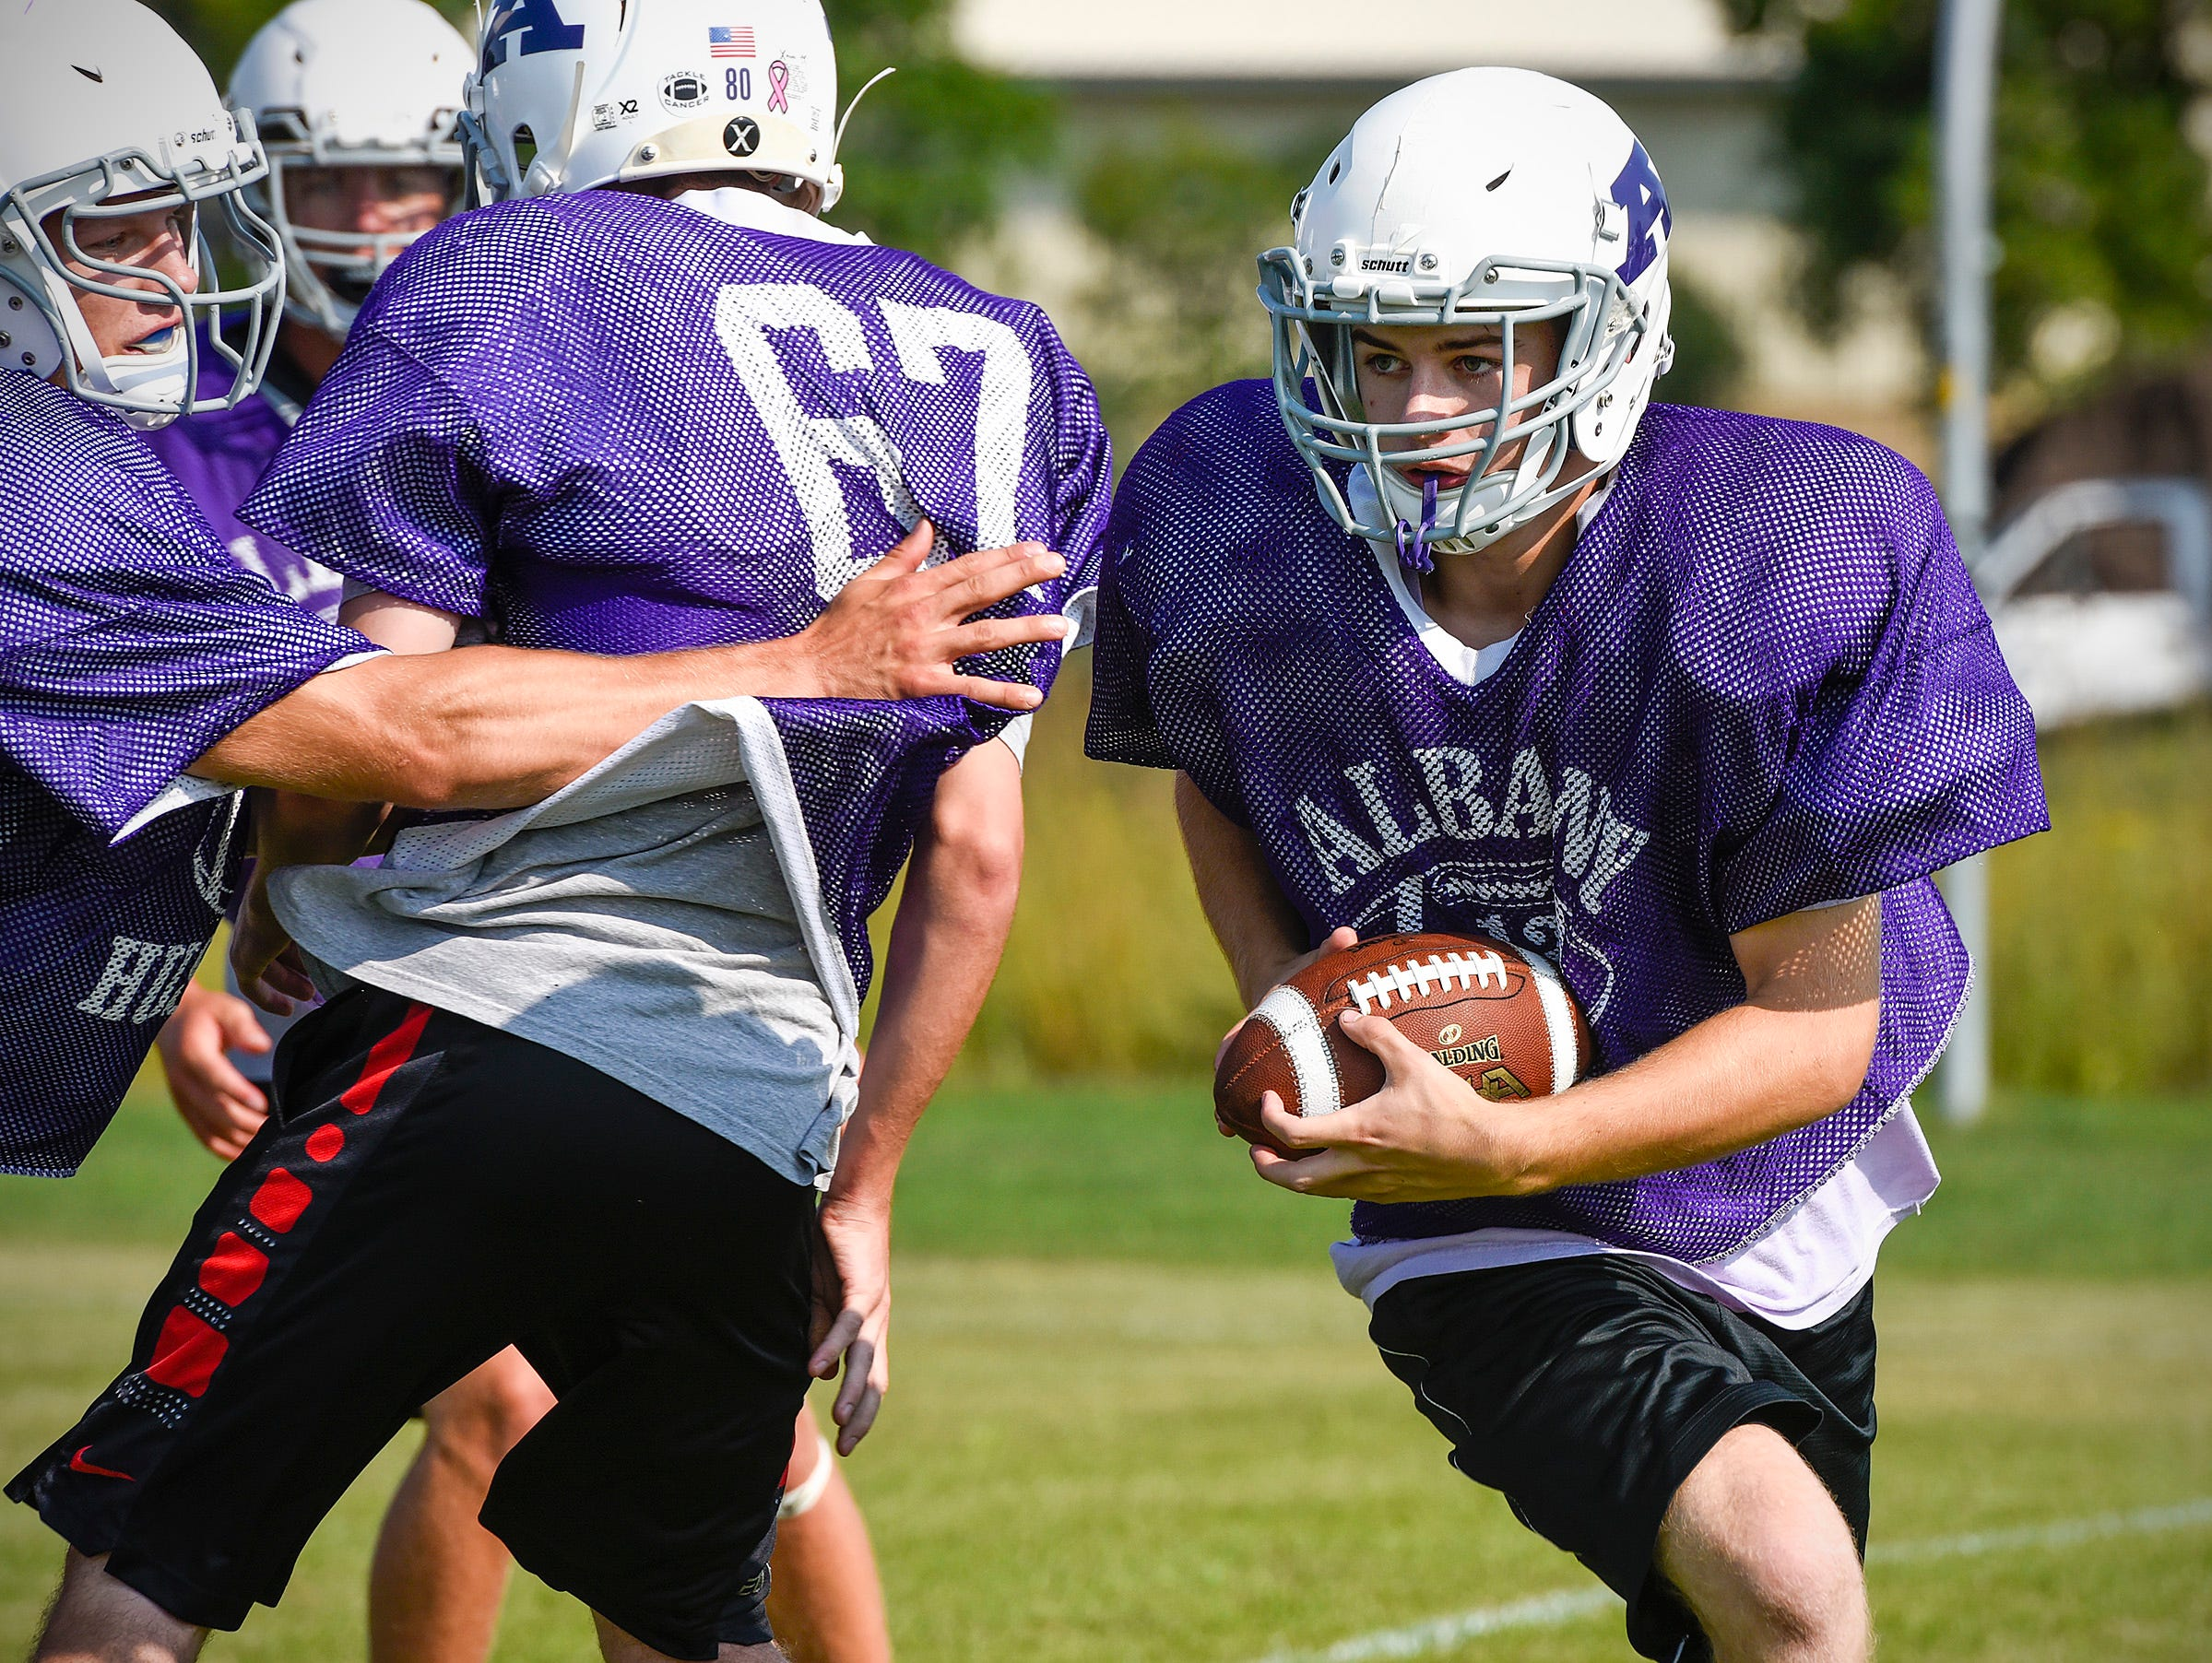 Albany 22 running back Ben McLachlan breaks around the end on a play Wednesday, Aug. 15, at the Albany High School.